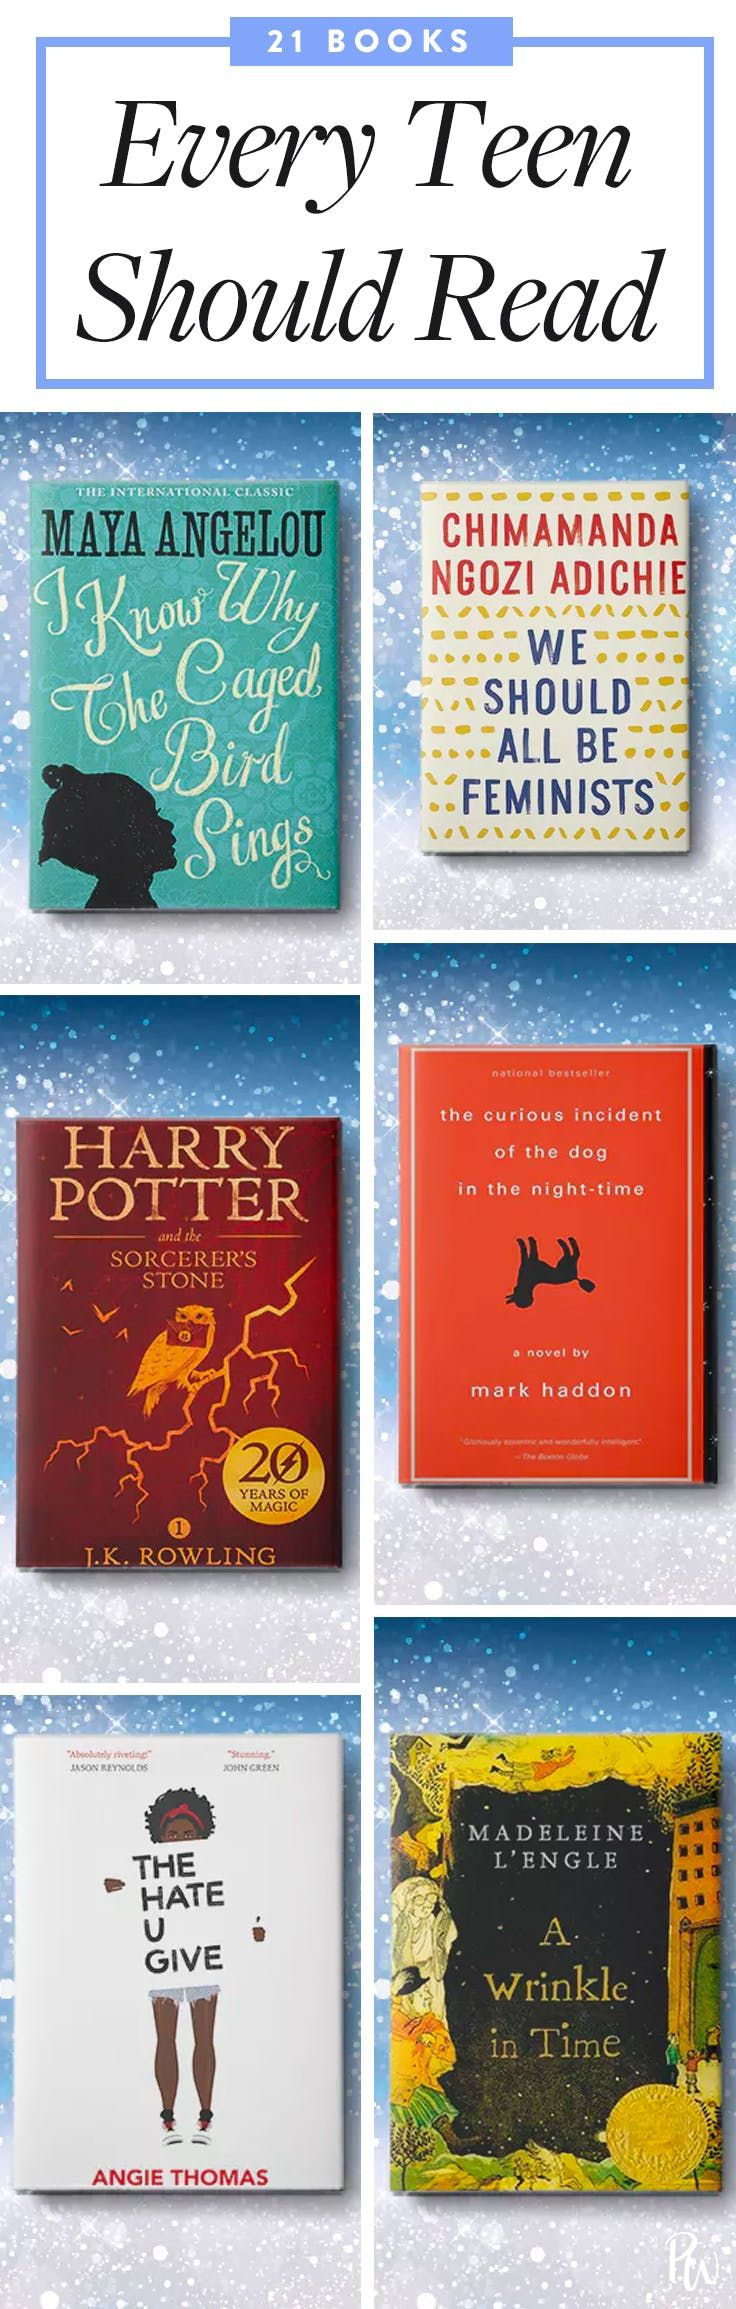 21 Books Every Teenager Should Read Books Books For Teens Good Books What is appropriate age to read harry